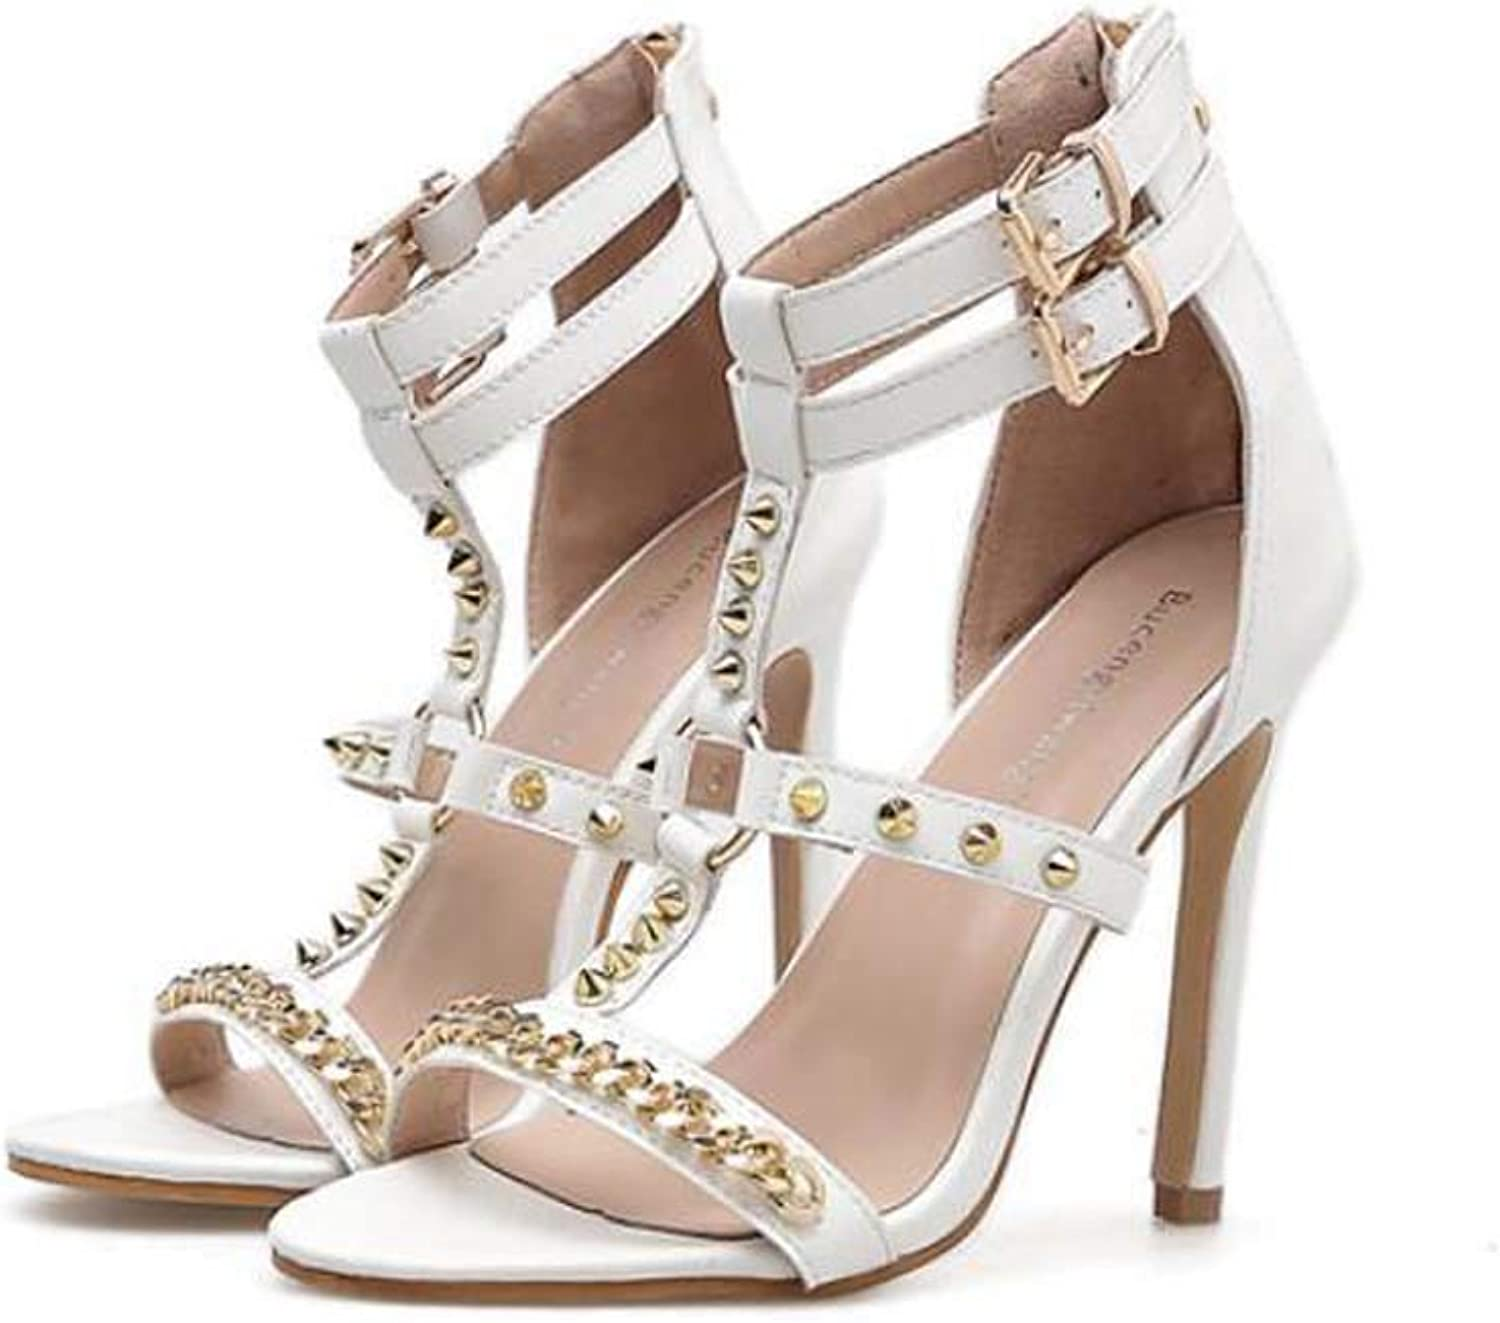 Women Pump High Heel Ankle Straps Sandals Sexy Open Toe D'Orsay Slingbacks Plush Party Dress shoes OL Roma shoes 35-40